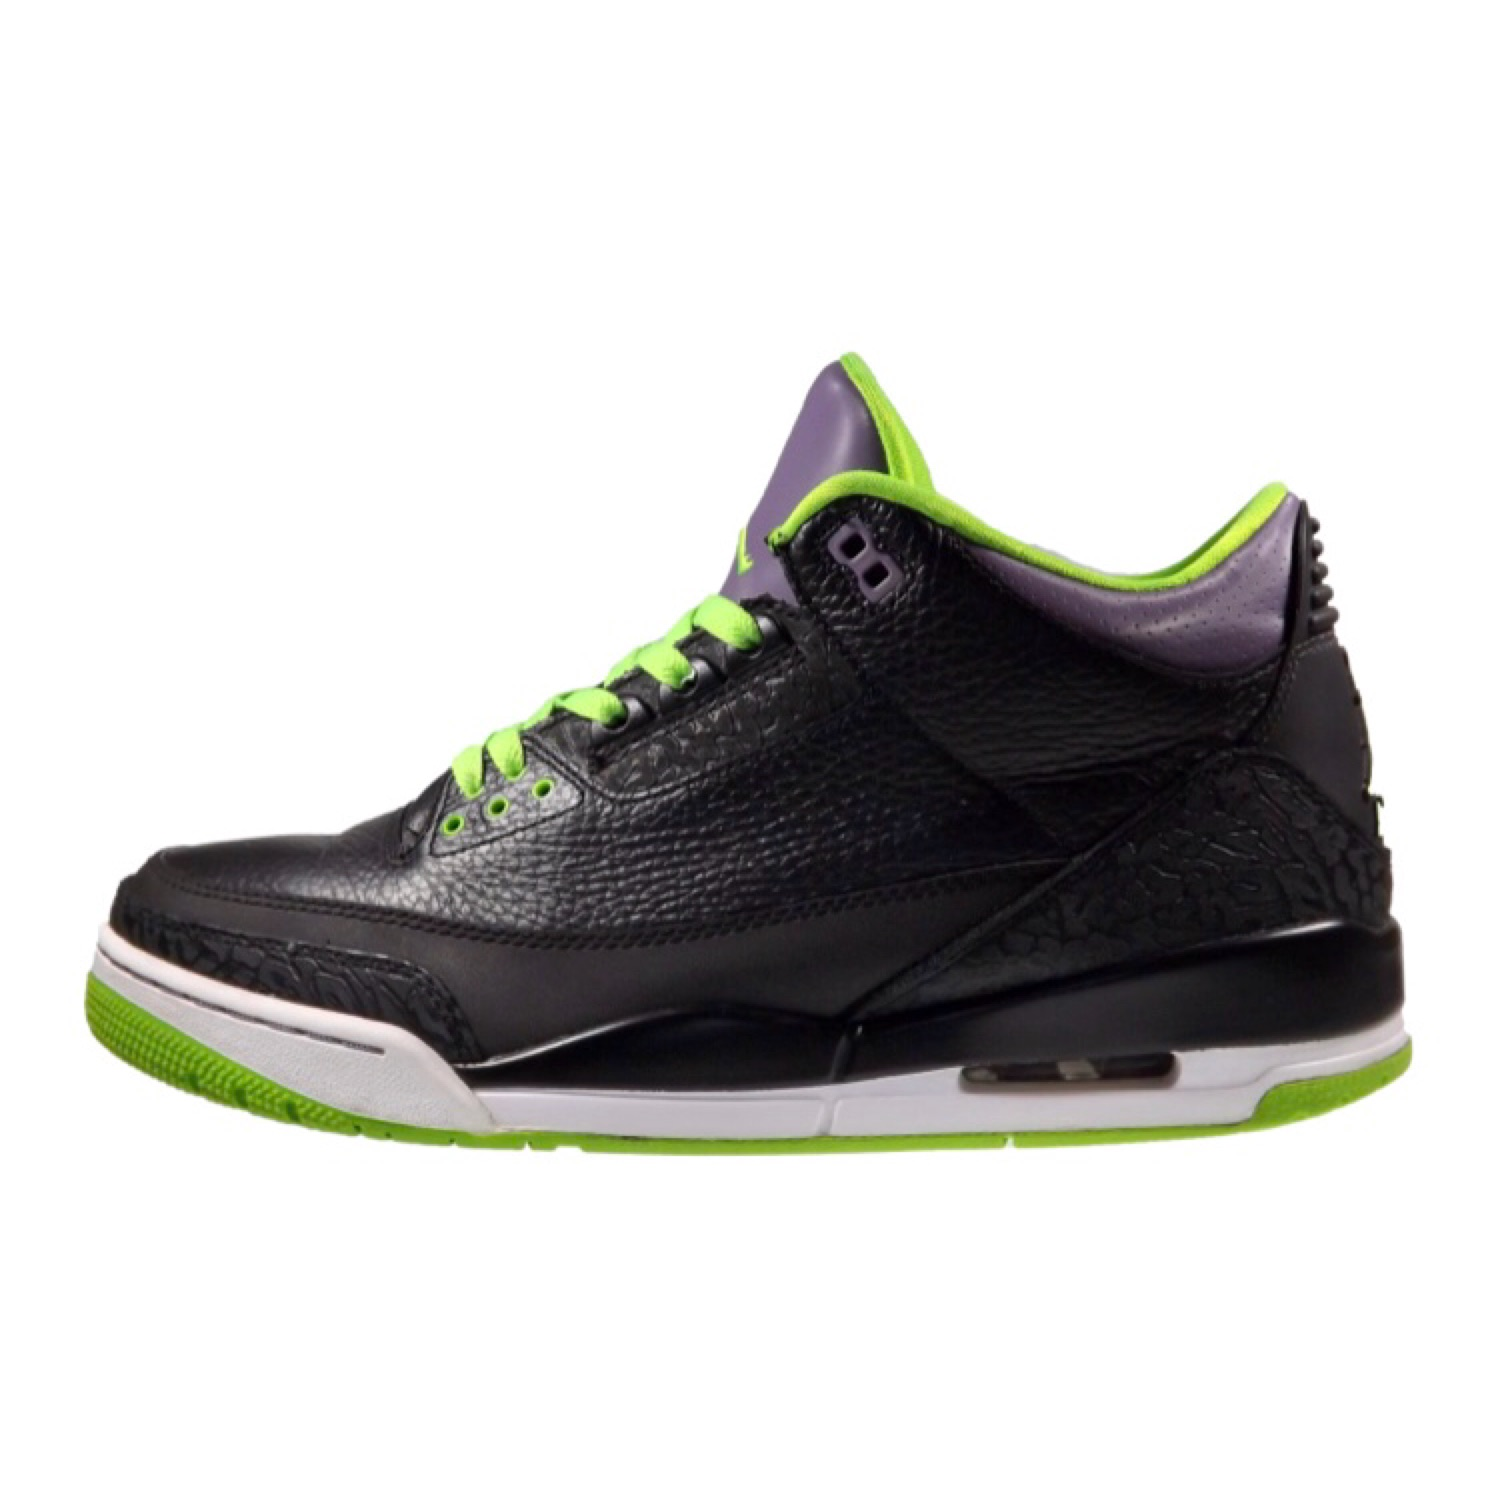 "classic fit 02284 3b346 Air Jordan 3 Retro ""Joker"" (Size 10.5)"